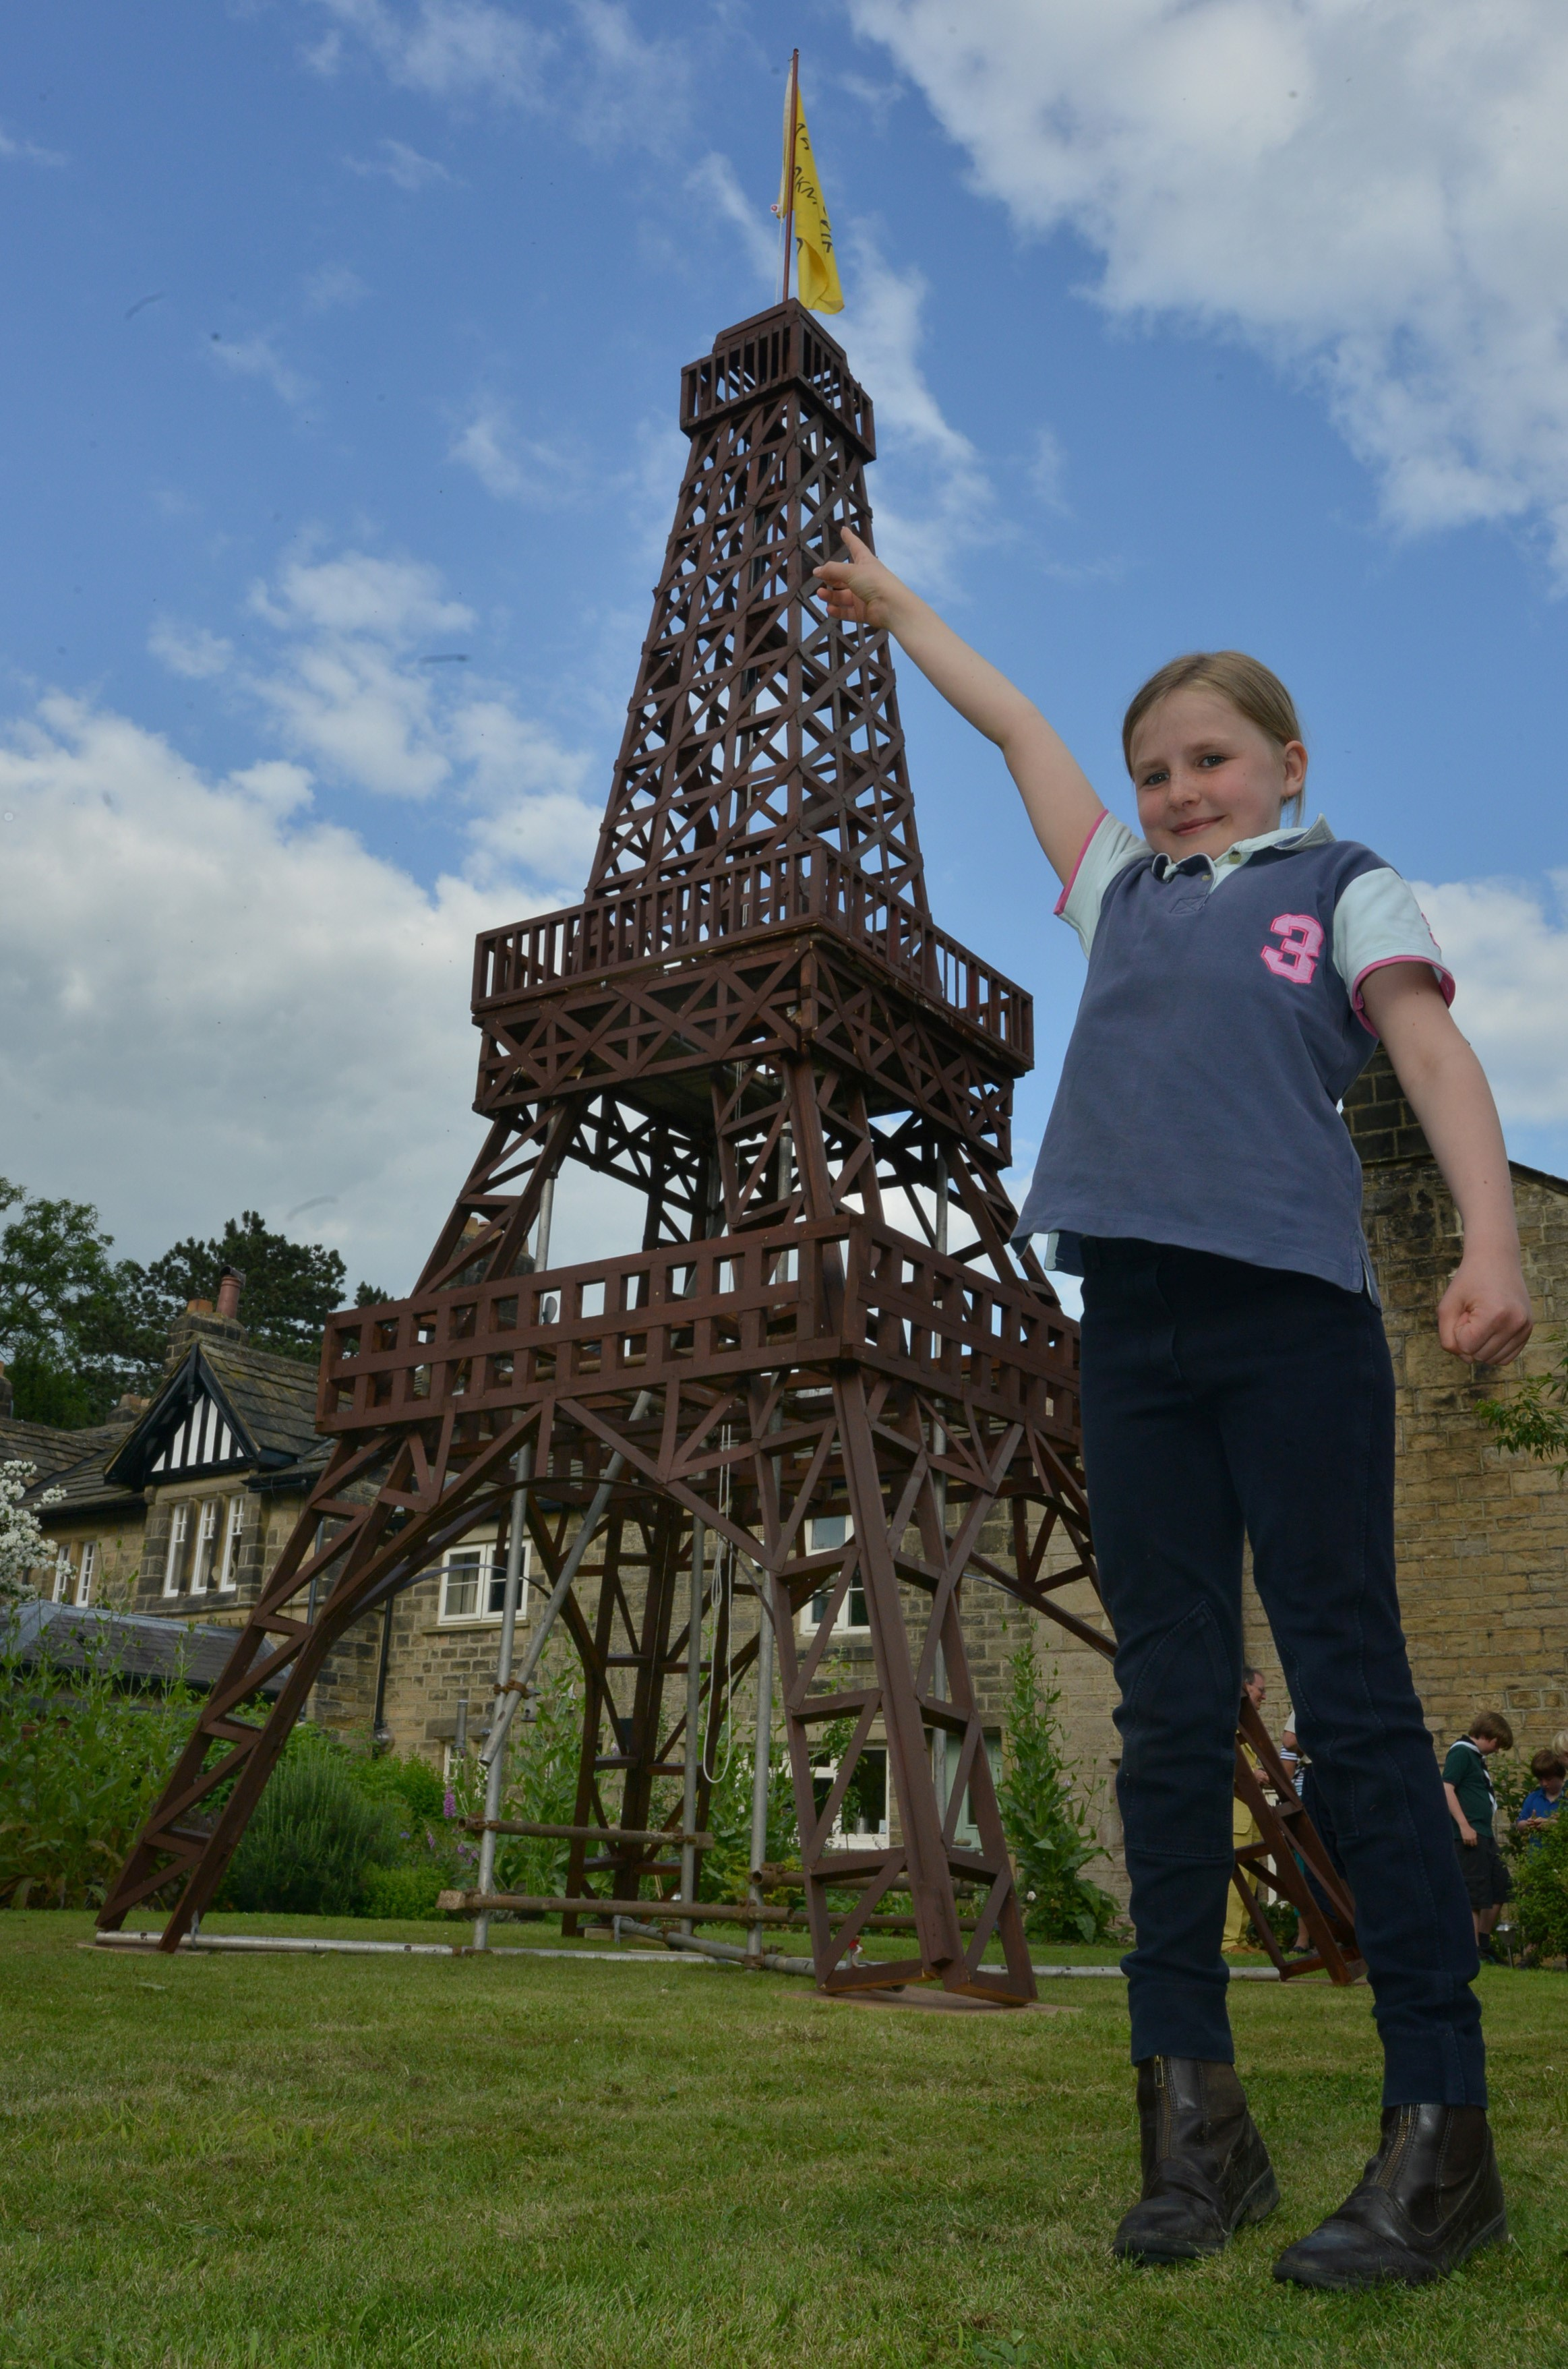 Eiffel Tower pops up in Burley-in-Wharfedale for Tour de France